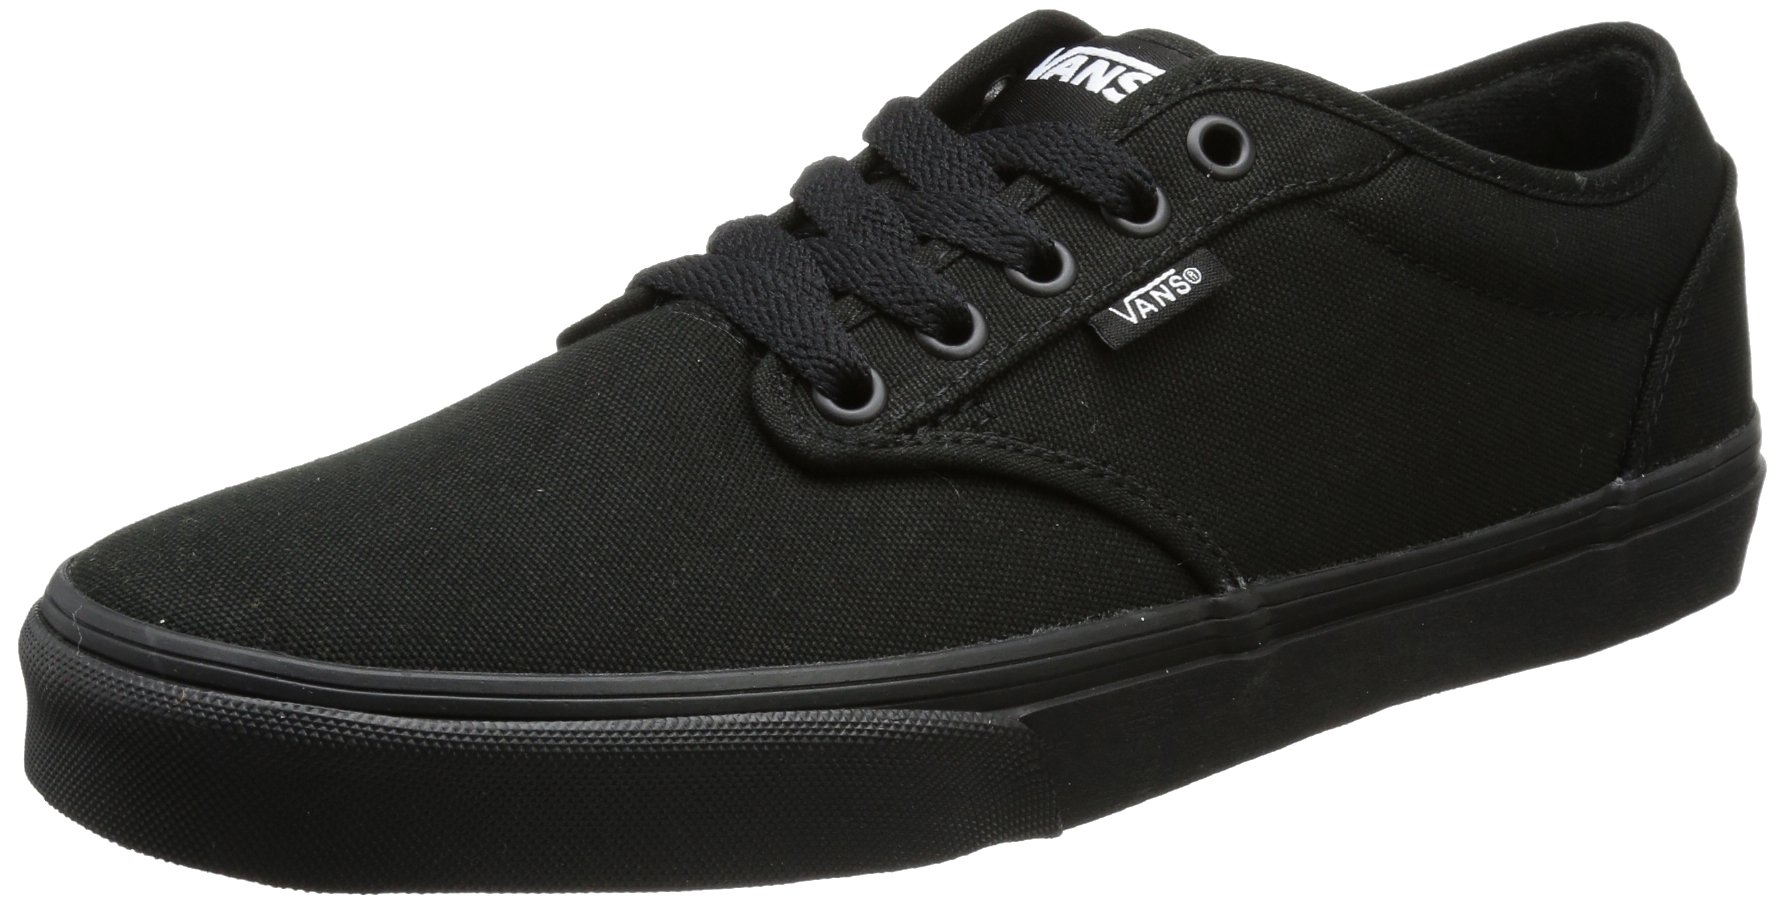 Vans Atwood School Shoes